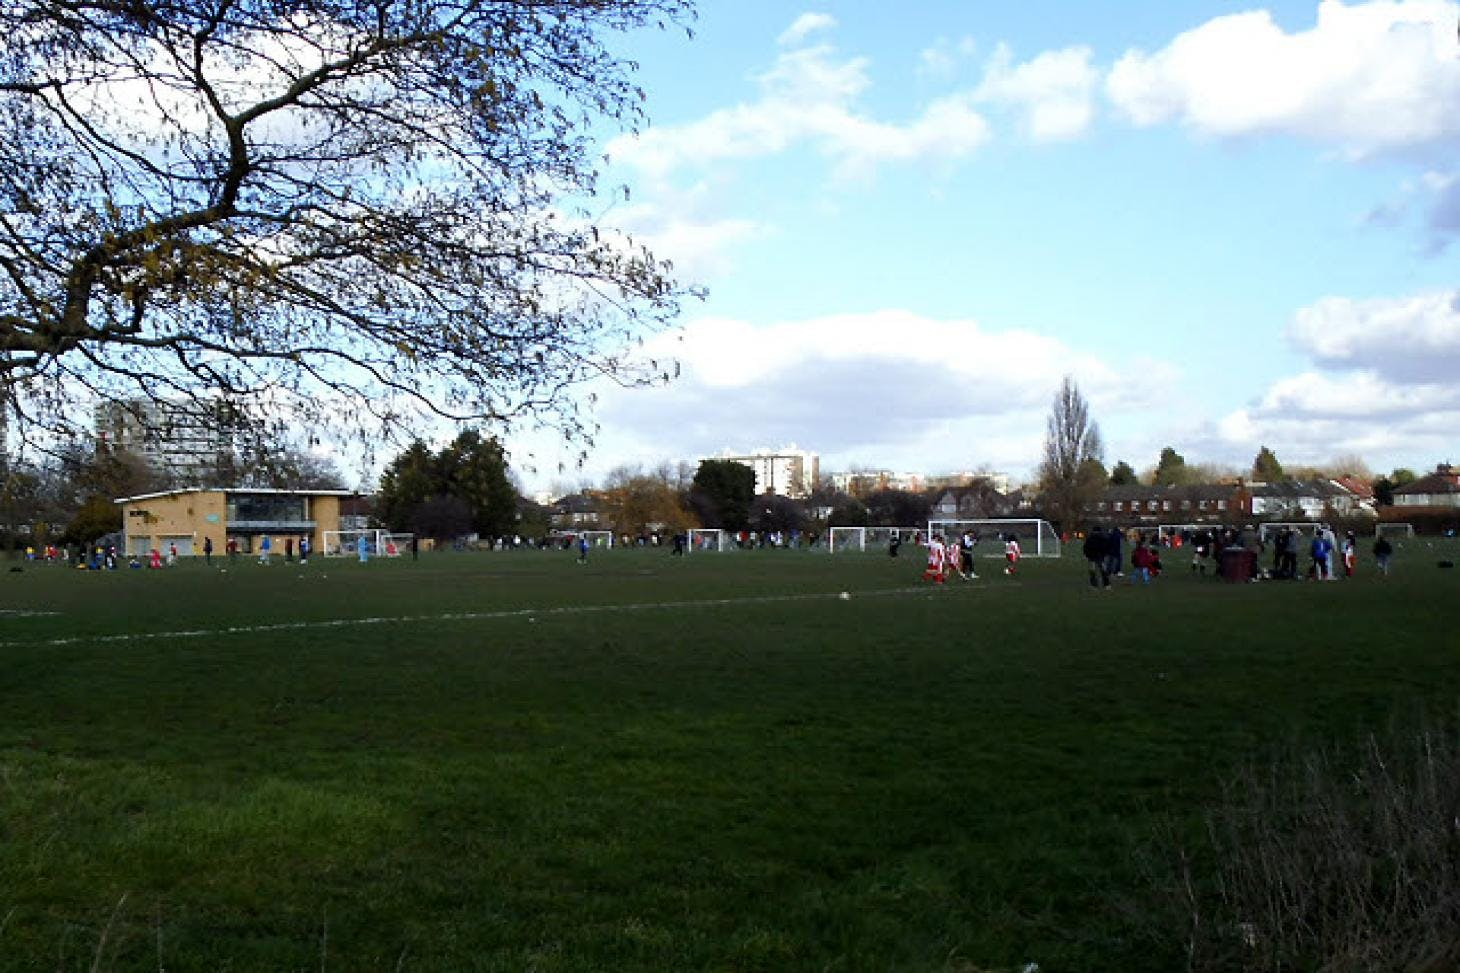 London Marathon Playing Fields - Greenwich 5 a side | Grass football pitch